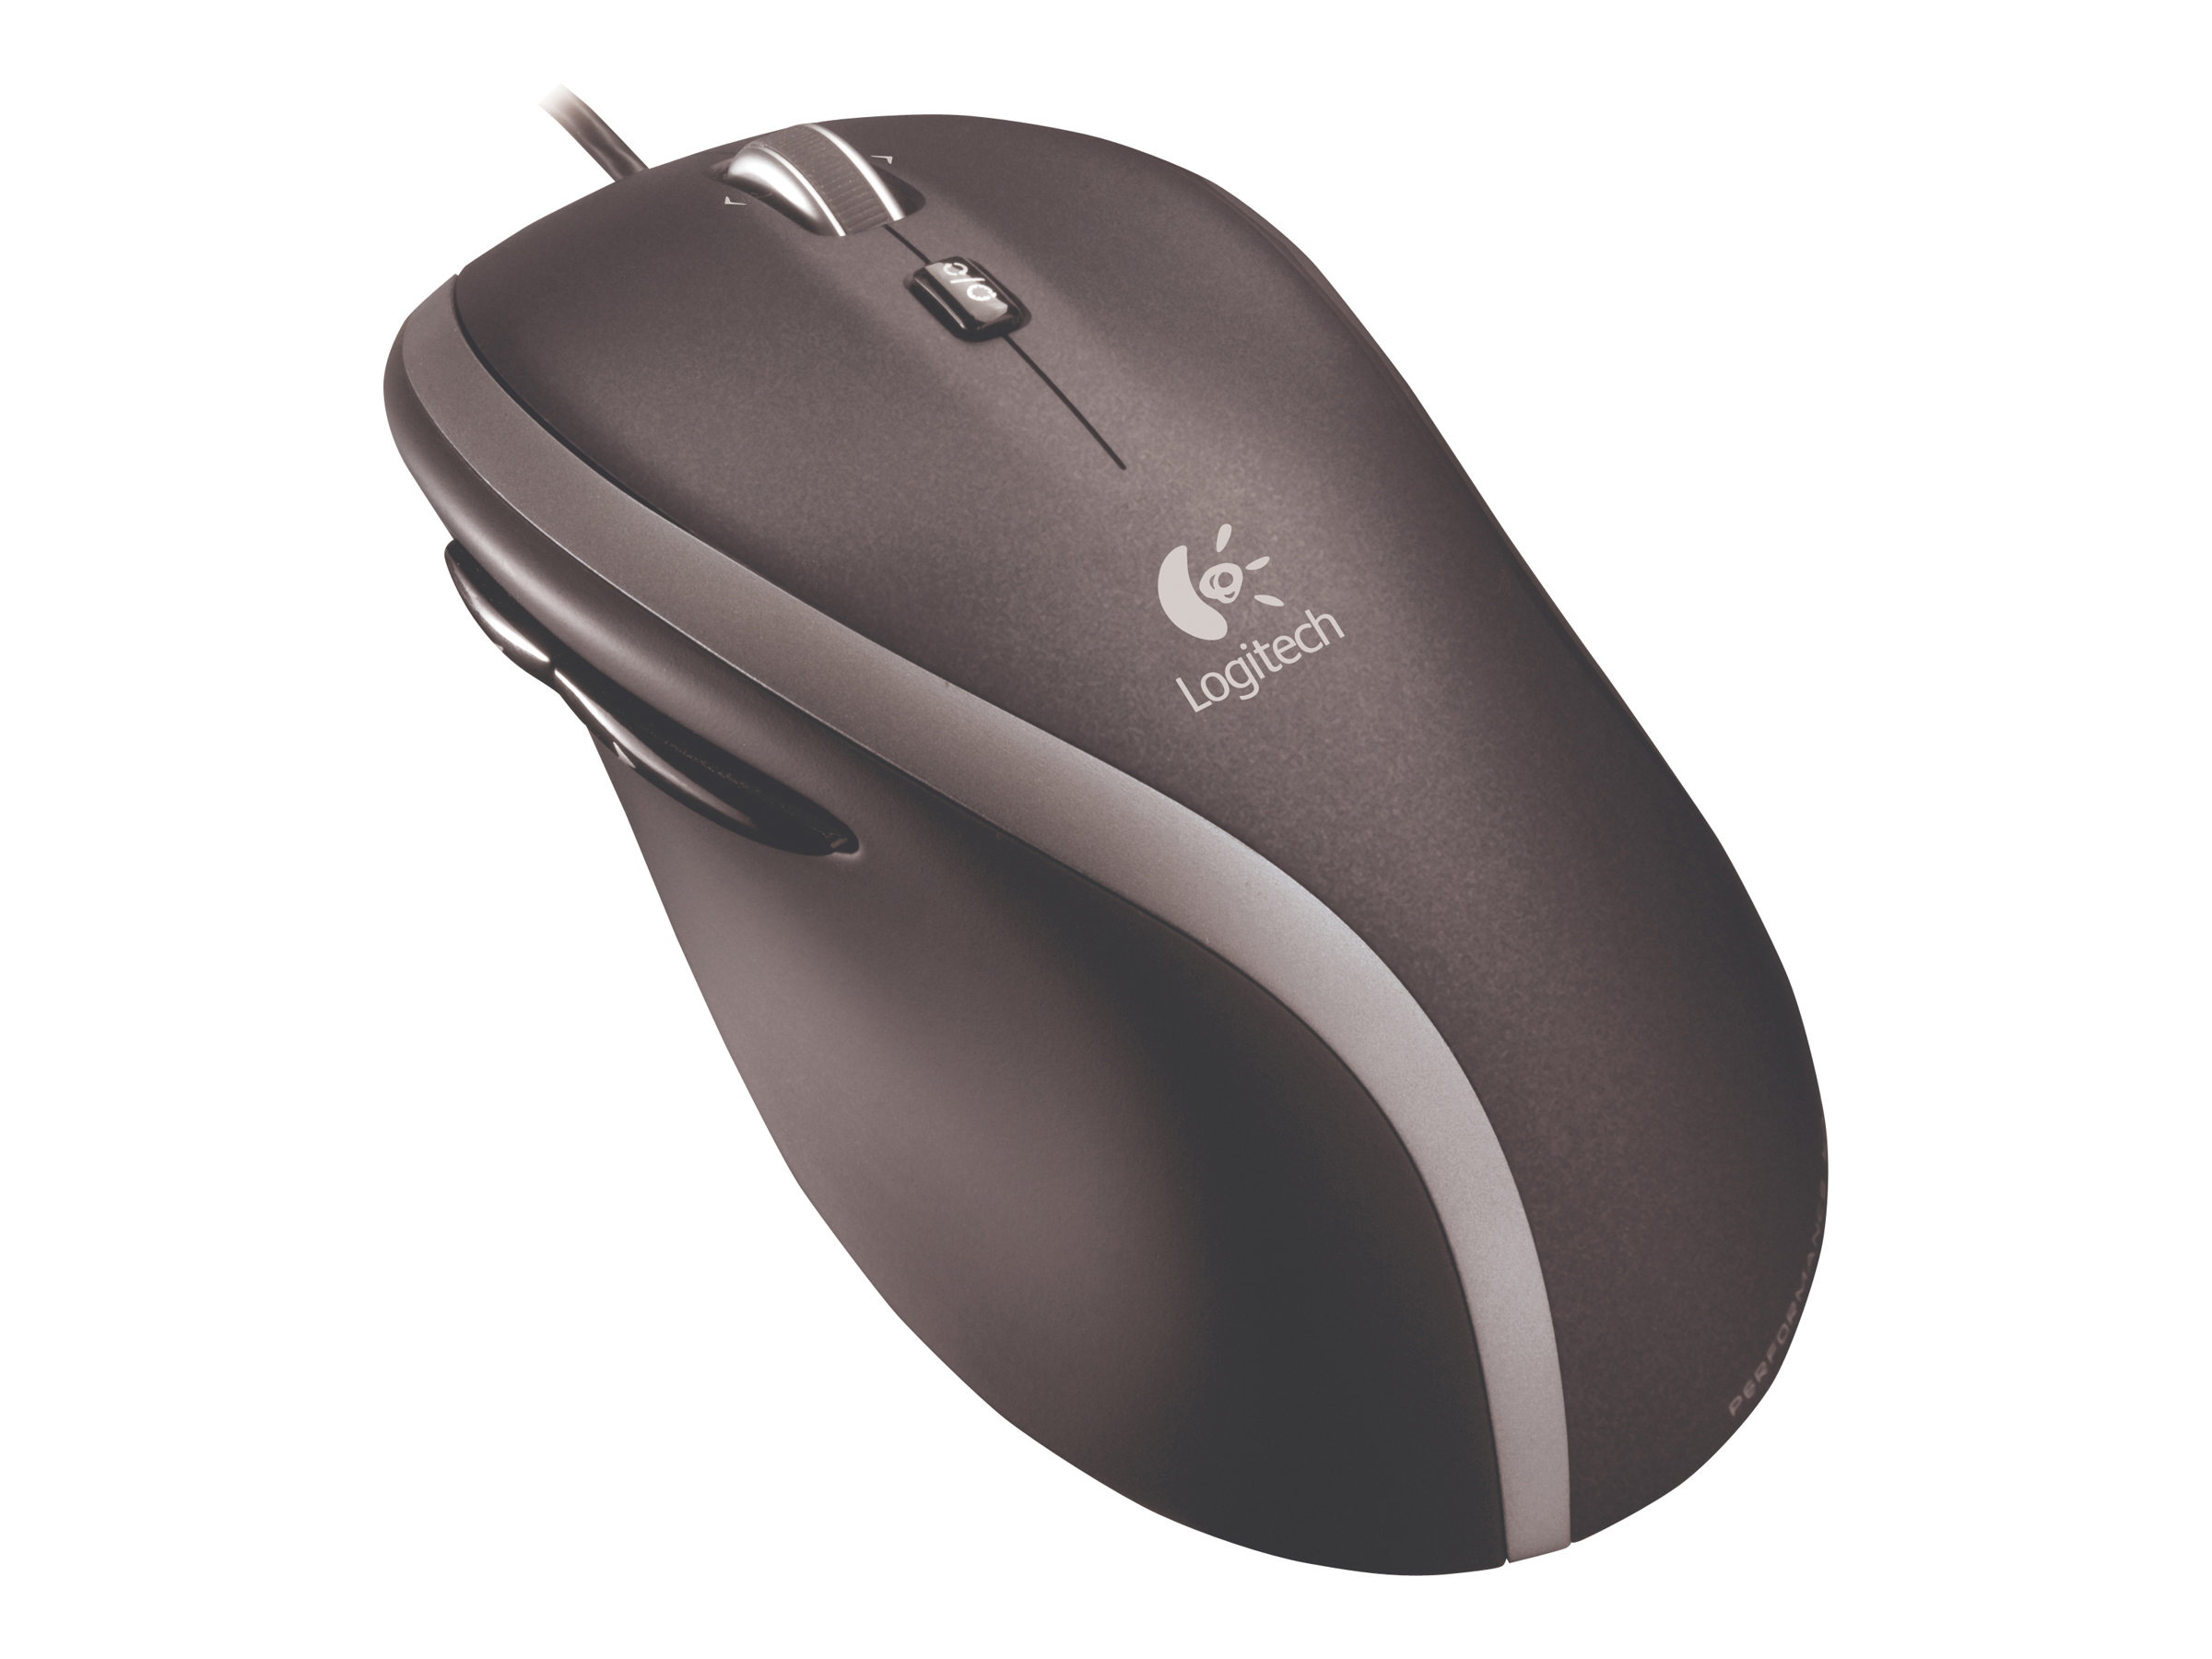 Image for Logitech M500 - Mouse - Usb from Circuit City